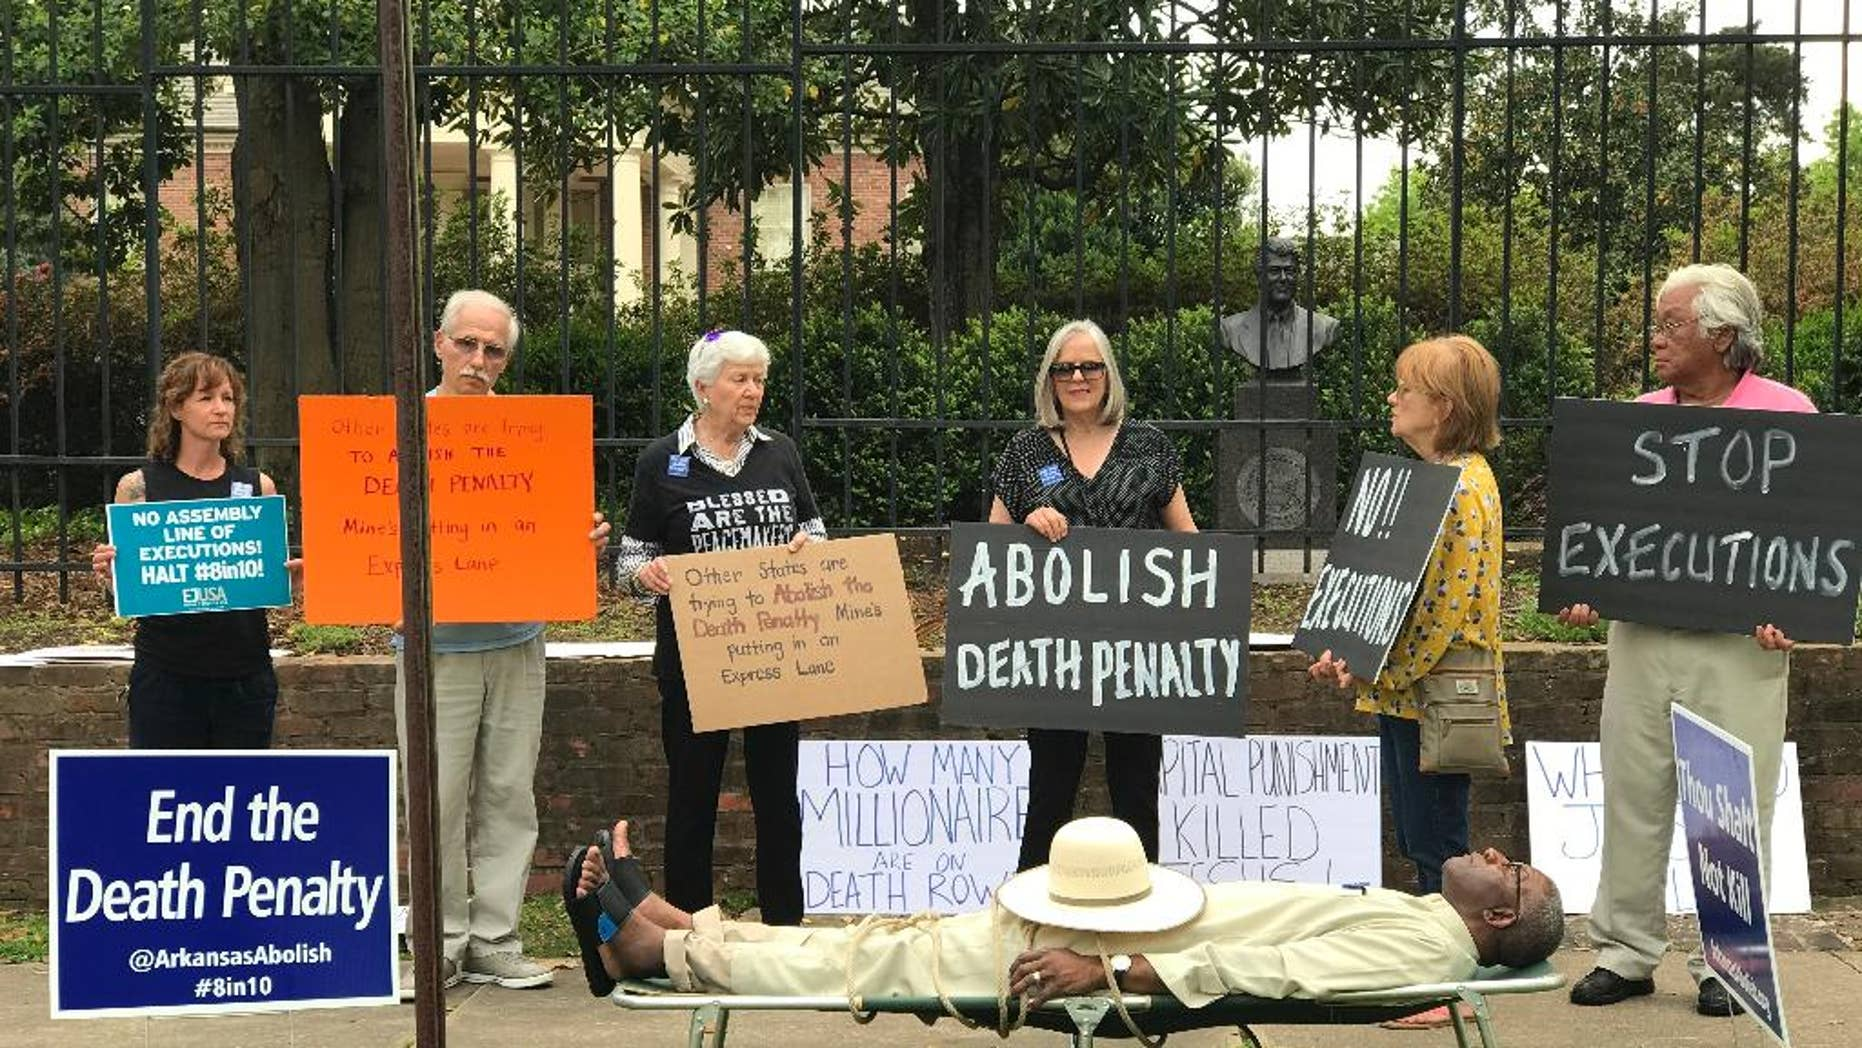 FILE - In this April 14, 2017, file photo provided by Sherry Simon, Pulaski County Circuit Judge Wendell Griffen, is shown on a cot at an anti-death penalty protest outside the Governor's Mansion in Little Rock, Ark. Griffen said Thursday, April 26, 2017, he was not given a chance to explain his actions before being removed from death penalty-related cases. He asked two state panels to investigate the attorney general's office and the state Supreme Court over his removal. (Sherry Simon via AP, File)